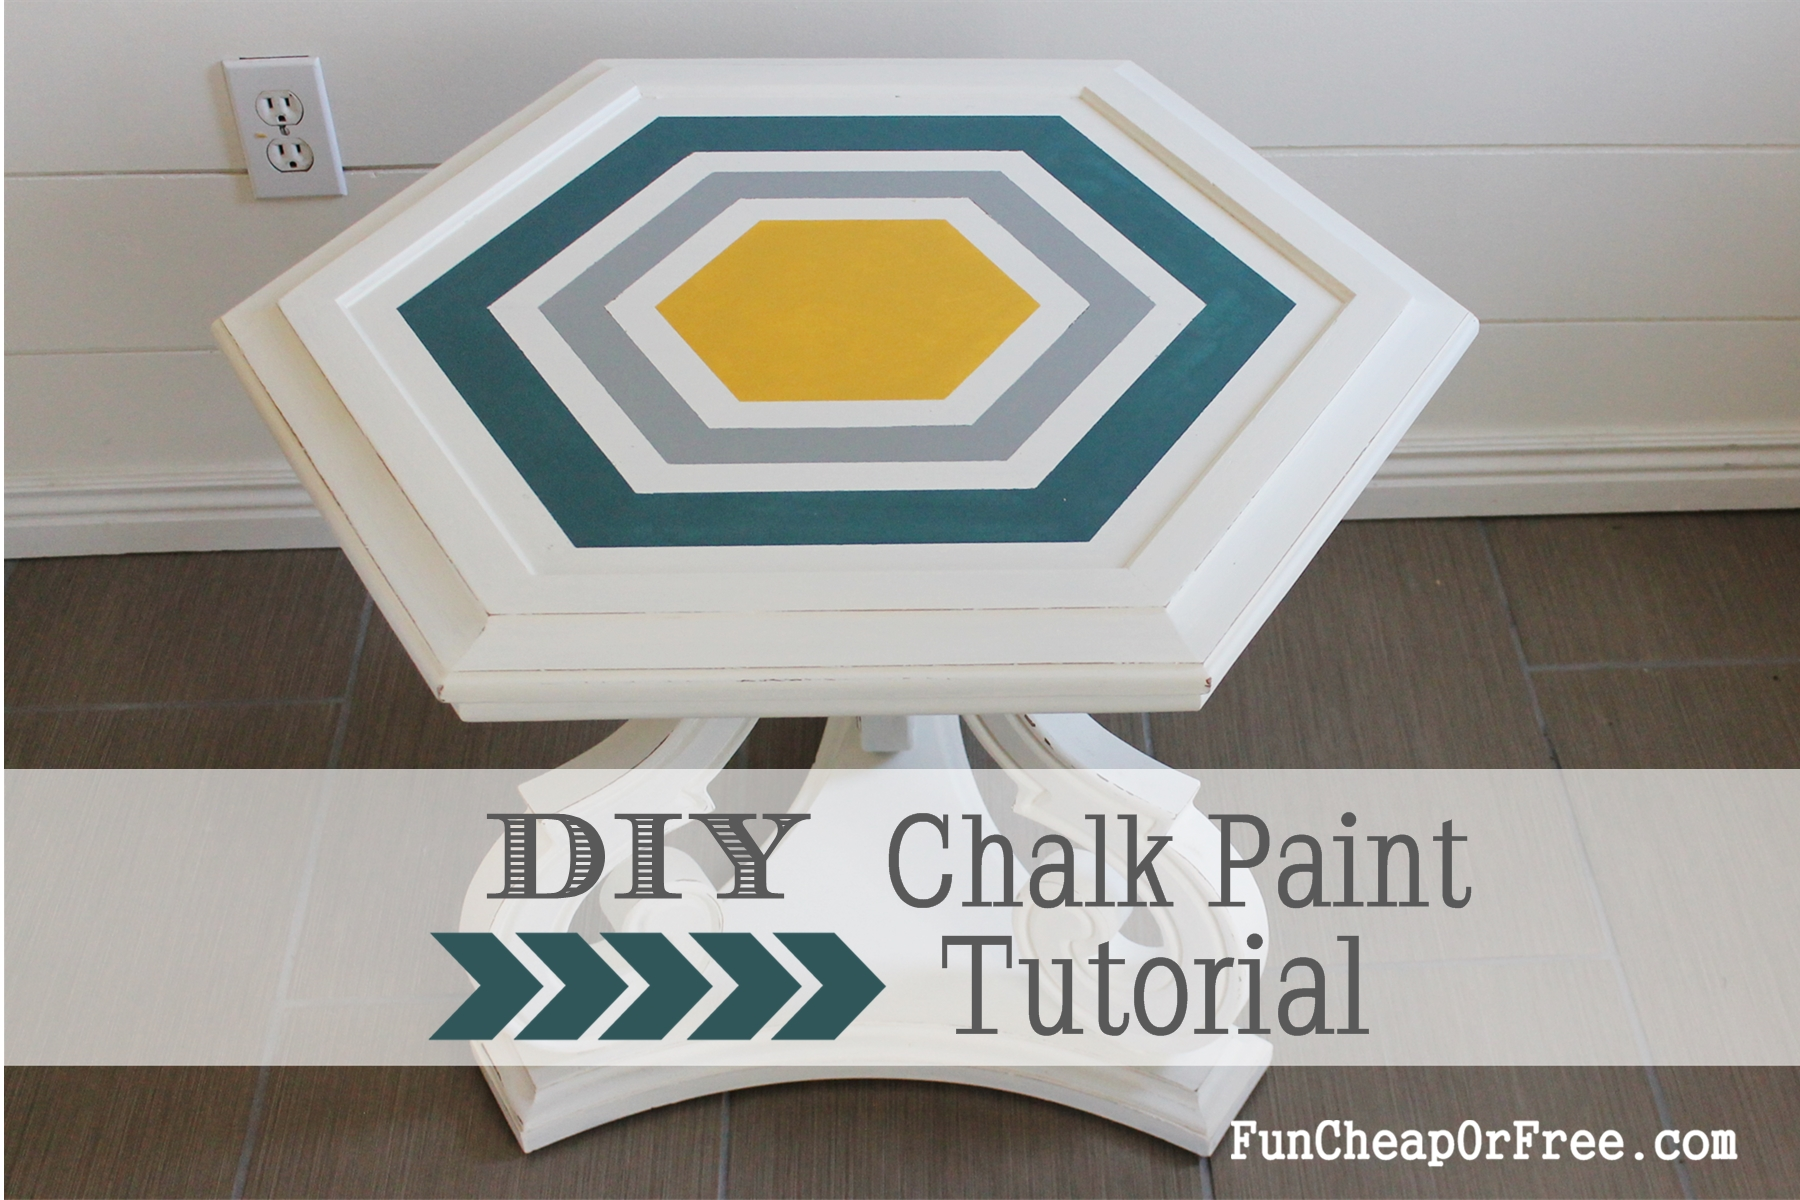 DIY Chalk Paint how to refinish furniture Fun Cheap or Free